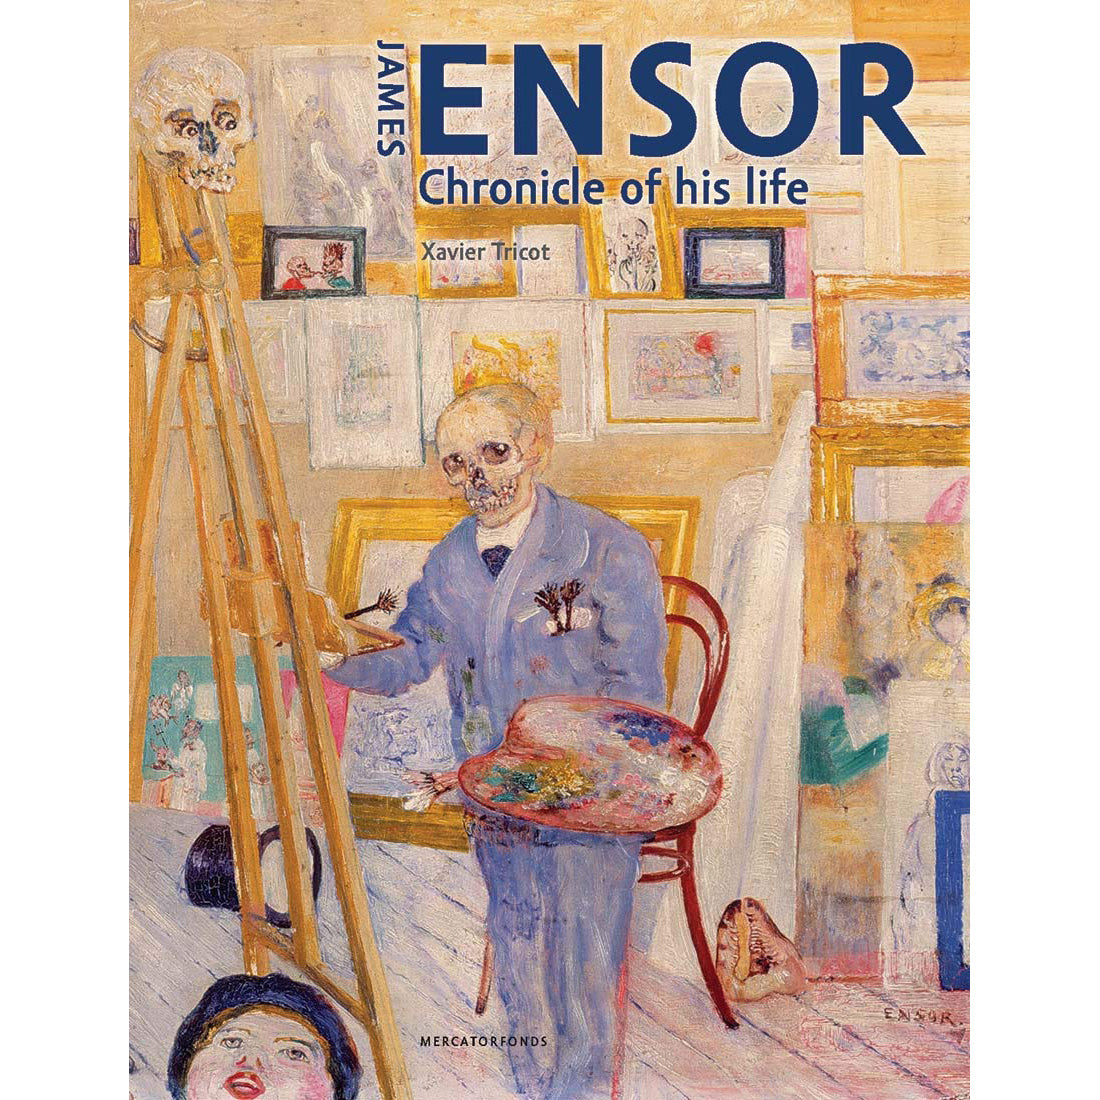 James Ensor: Chronicle of His Life